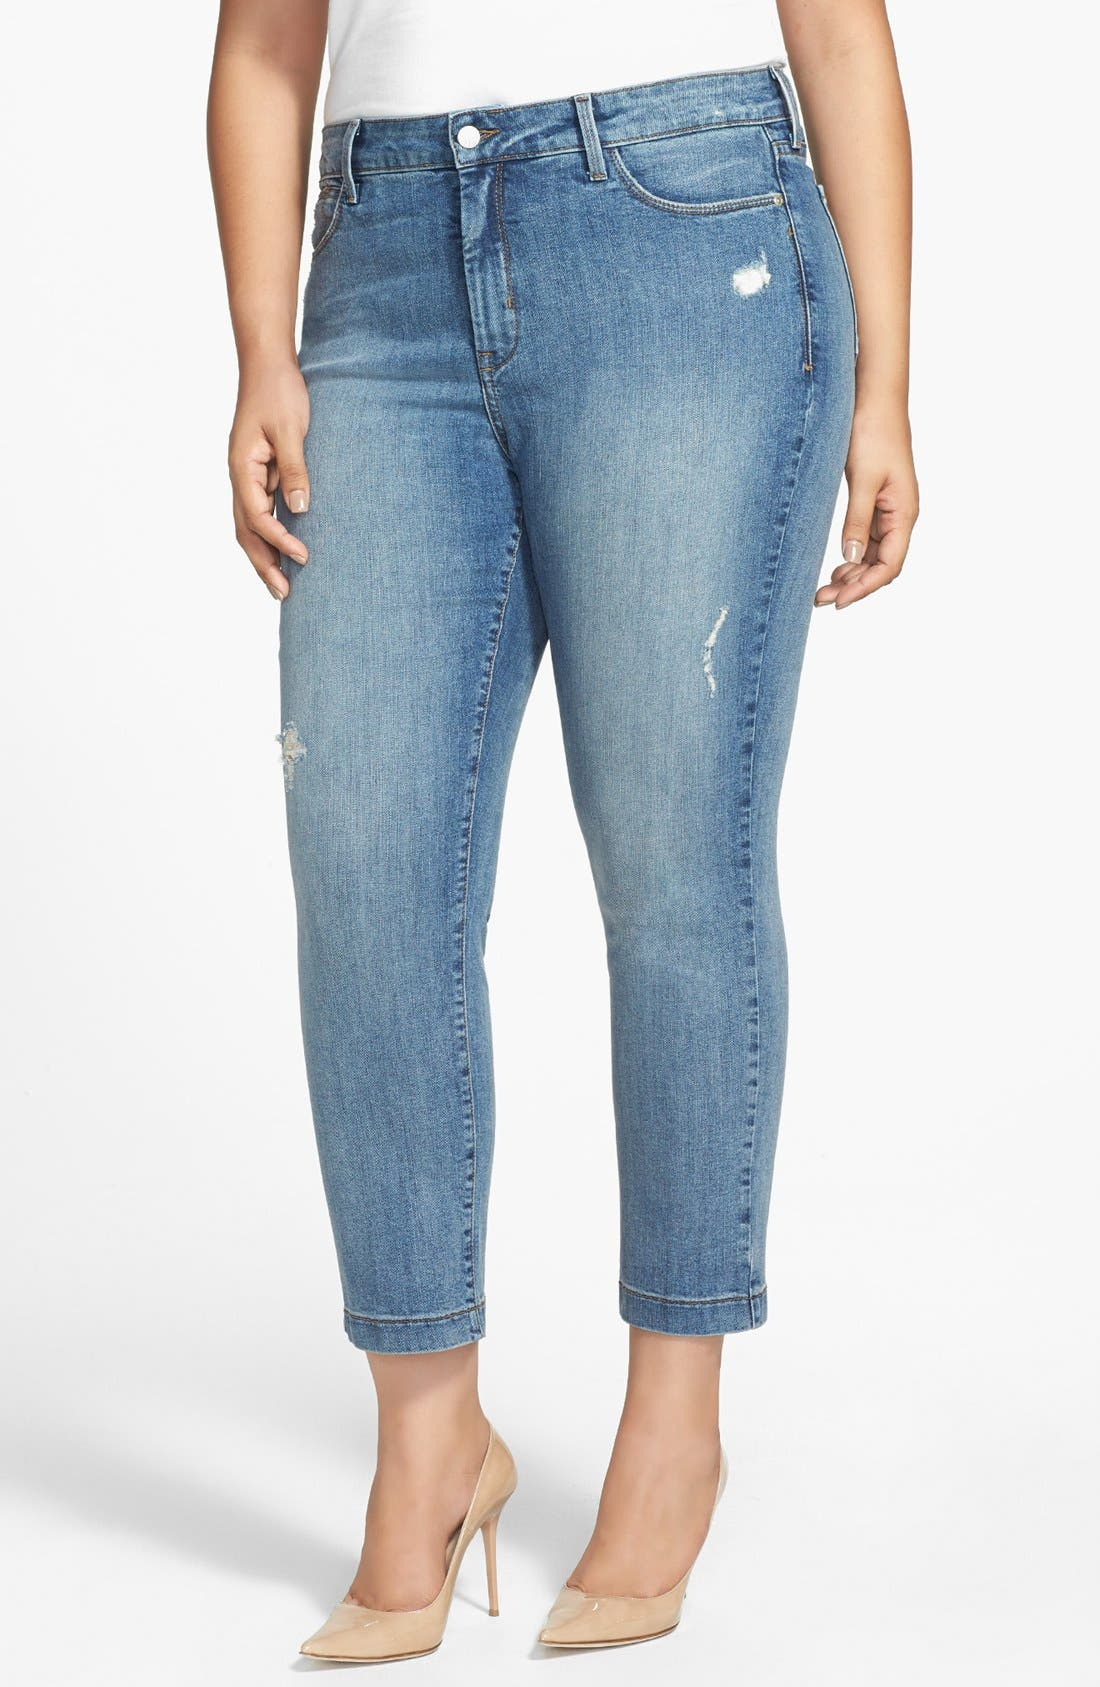 Alternate Image 1 Selected - NYDJ 'Audrey' Stretch Skinny Ankle Jeans (Plus Size)